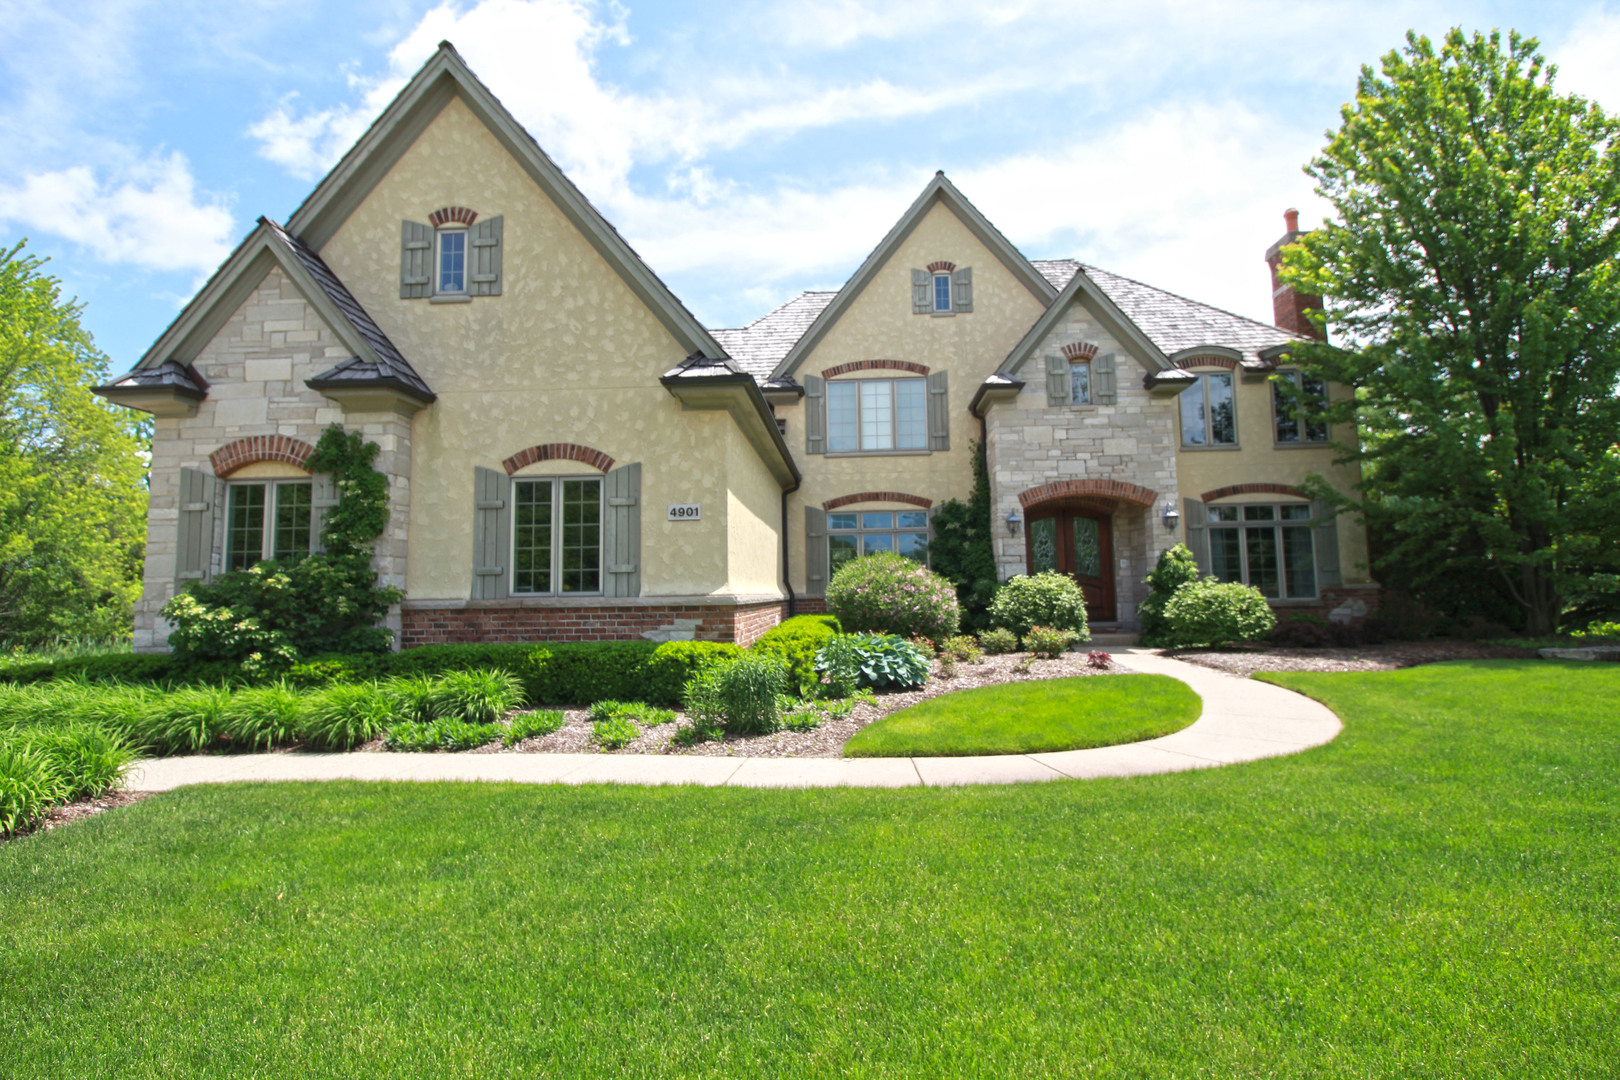 4901 Clover Court, Long Grove, Illinois 60047